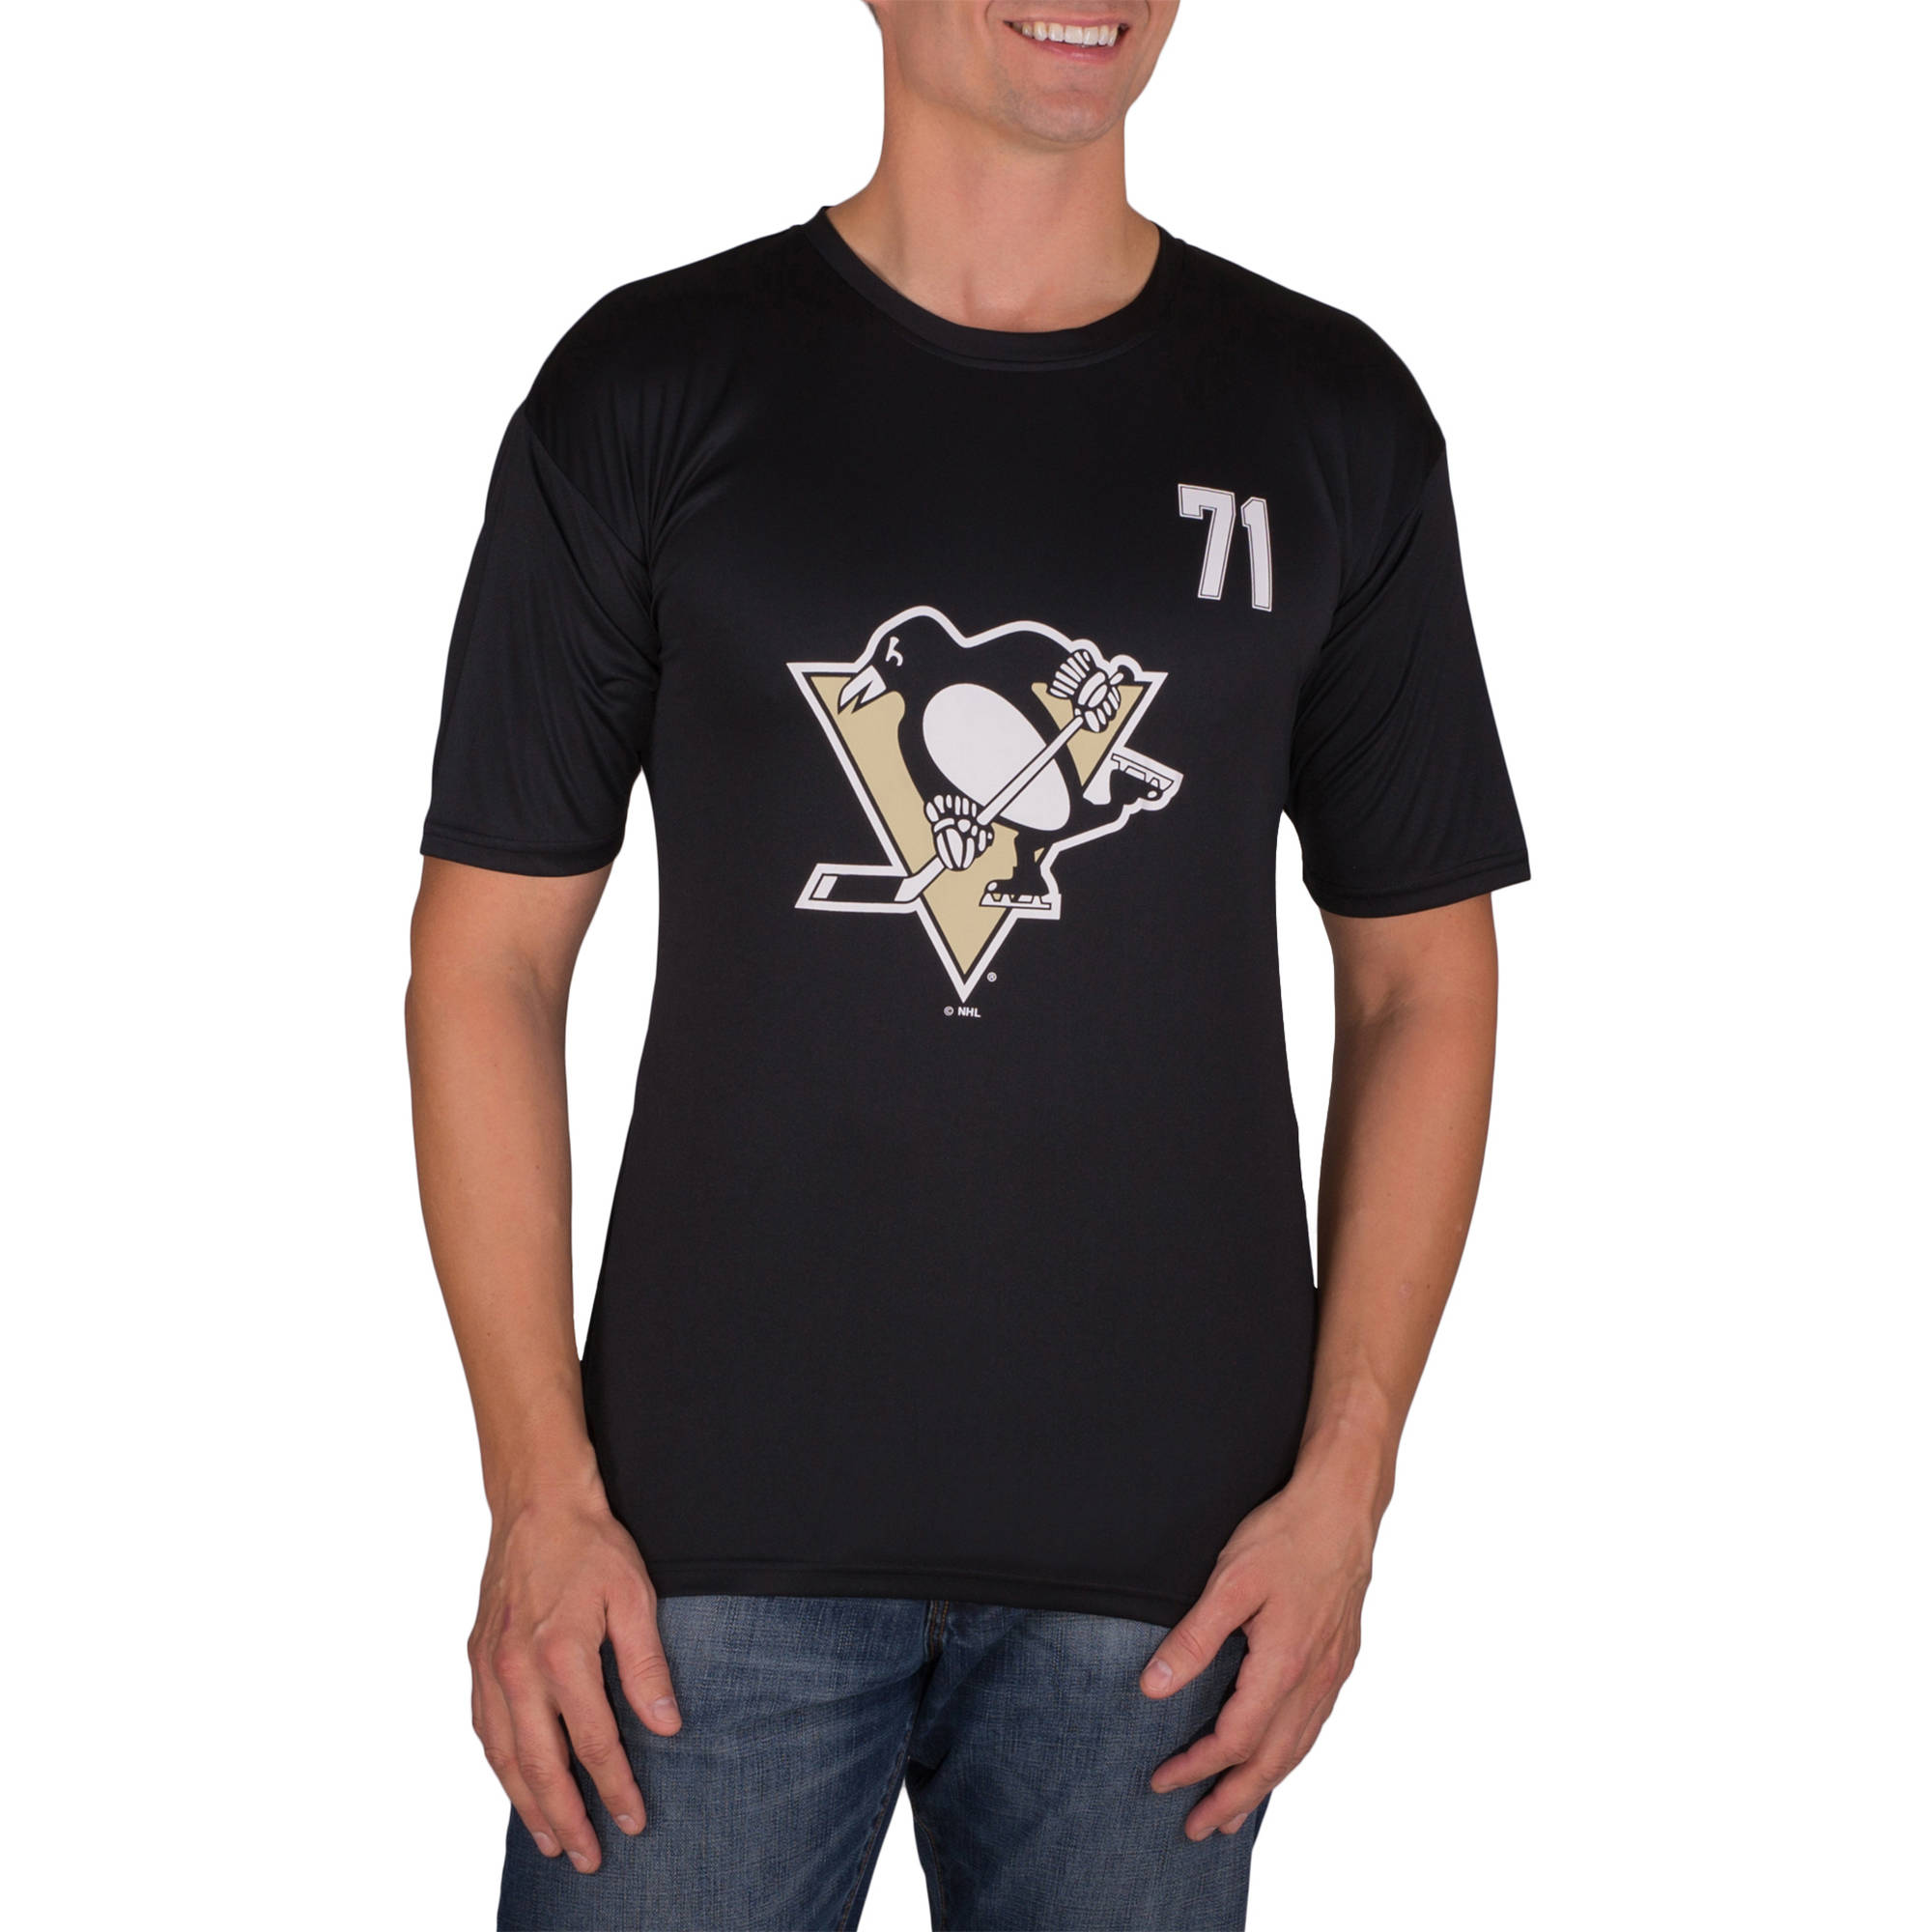 NHL Pittsburgh Penguins Evgeni Malkin 71 Big Men's Athletic-Fit Impact Tee Shirt